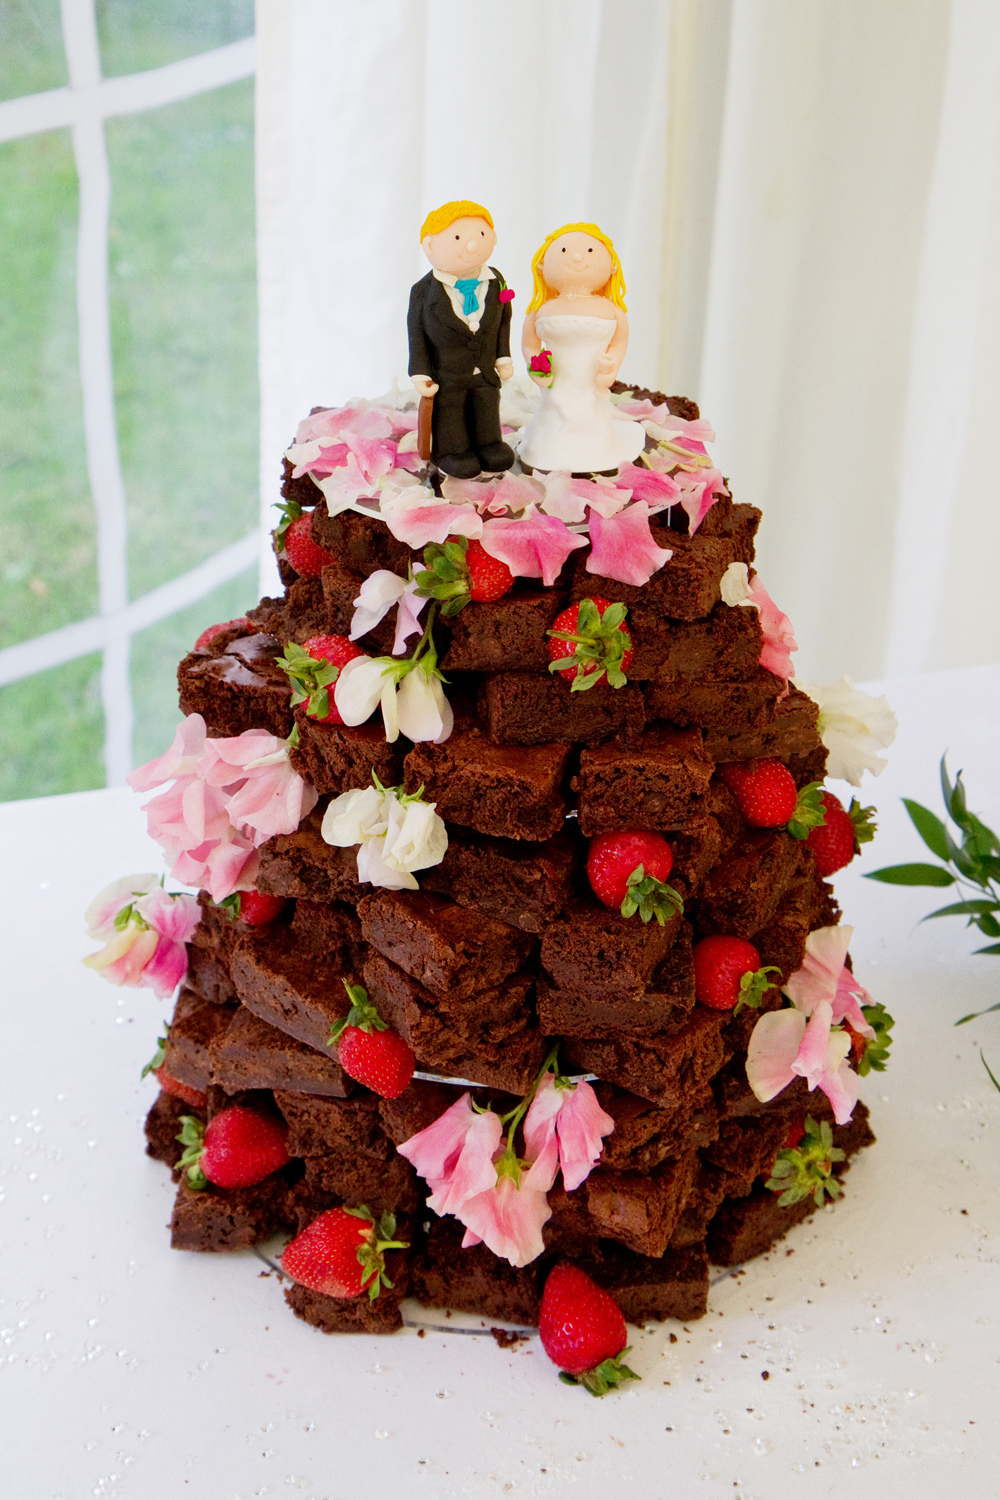 Chocolate Brownie Wedding Cake, Helen England Photography, Kent, U.K